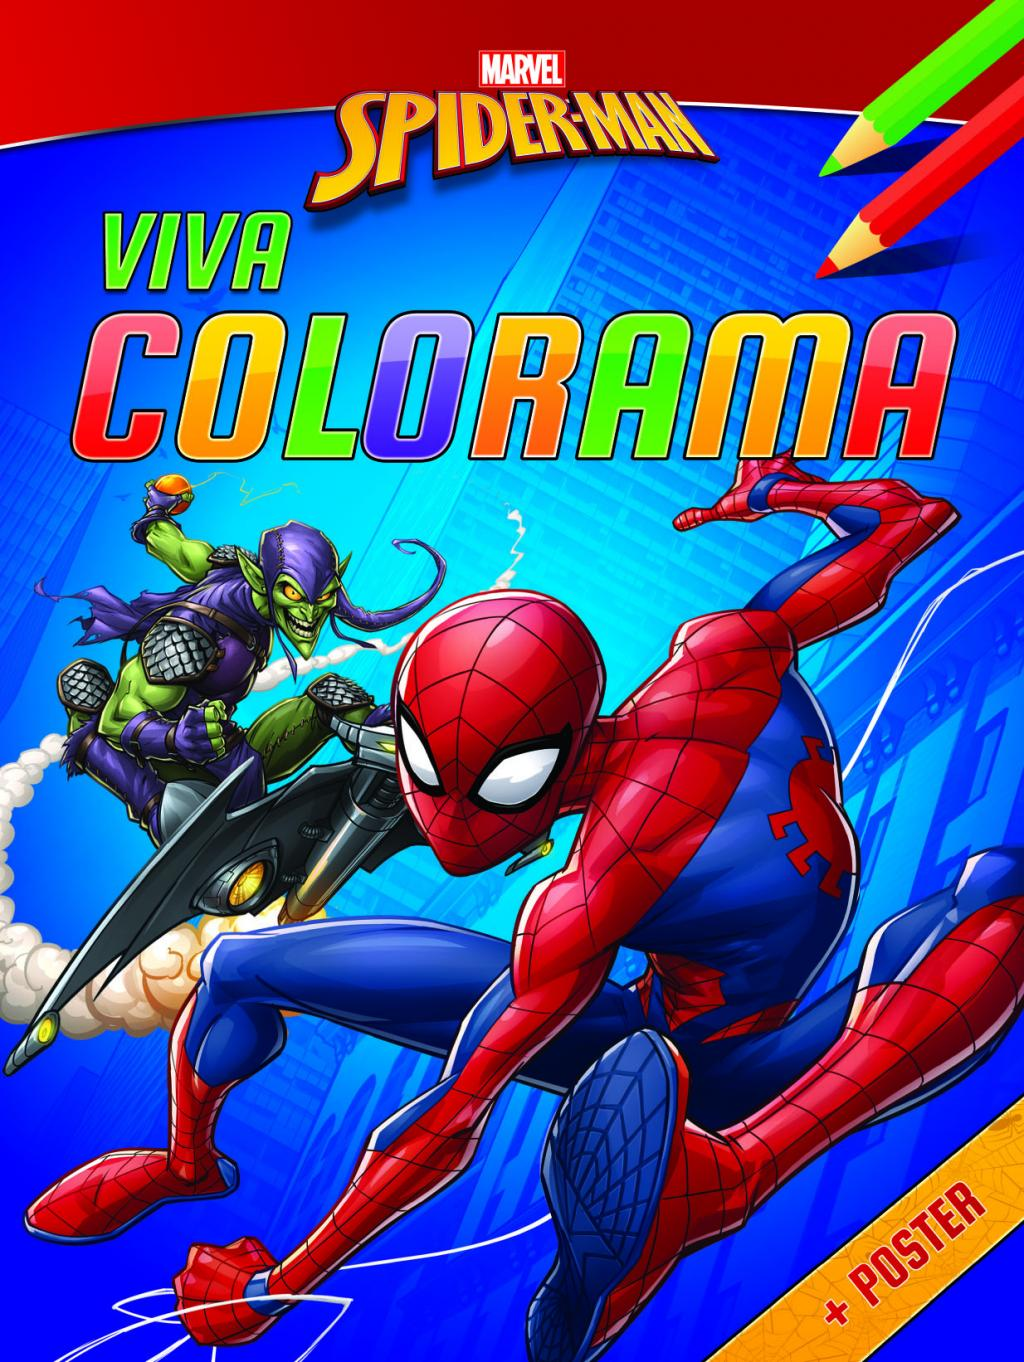 Spider-Man - Viva Colorama (avec poster)